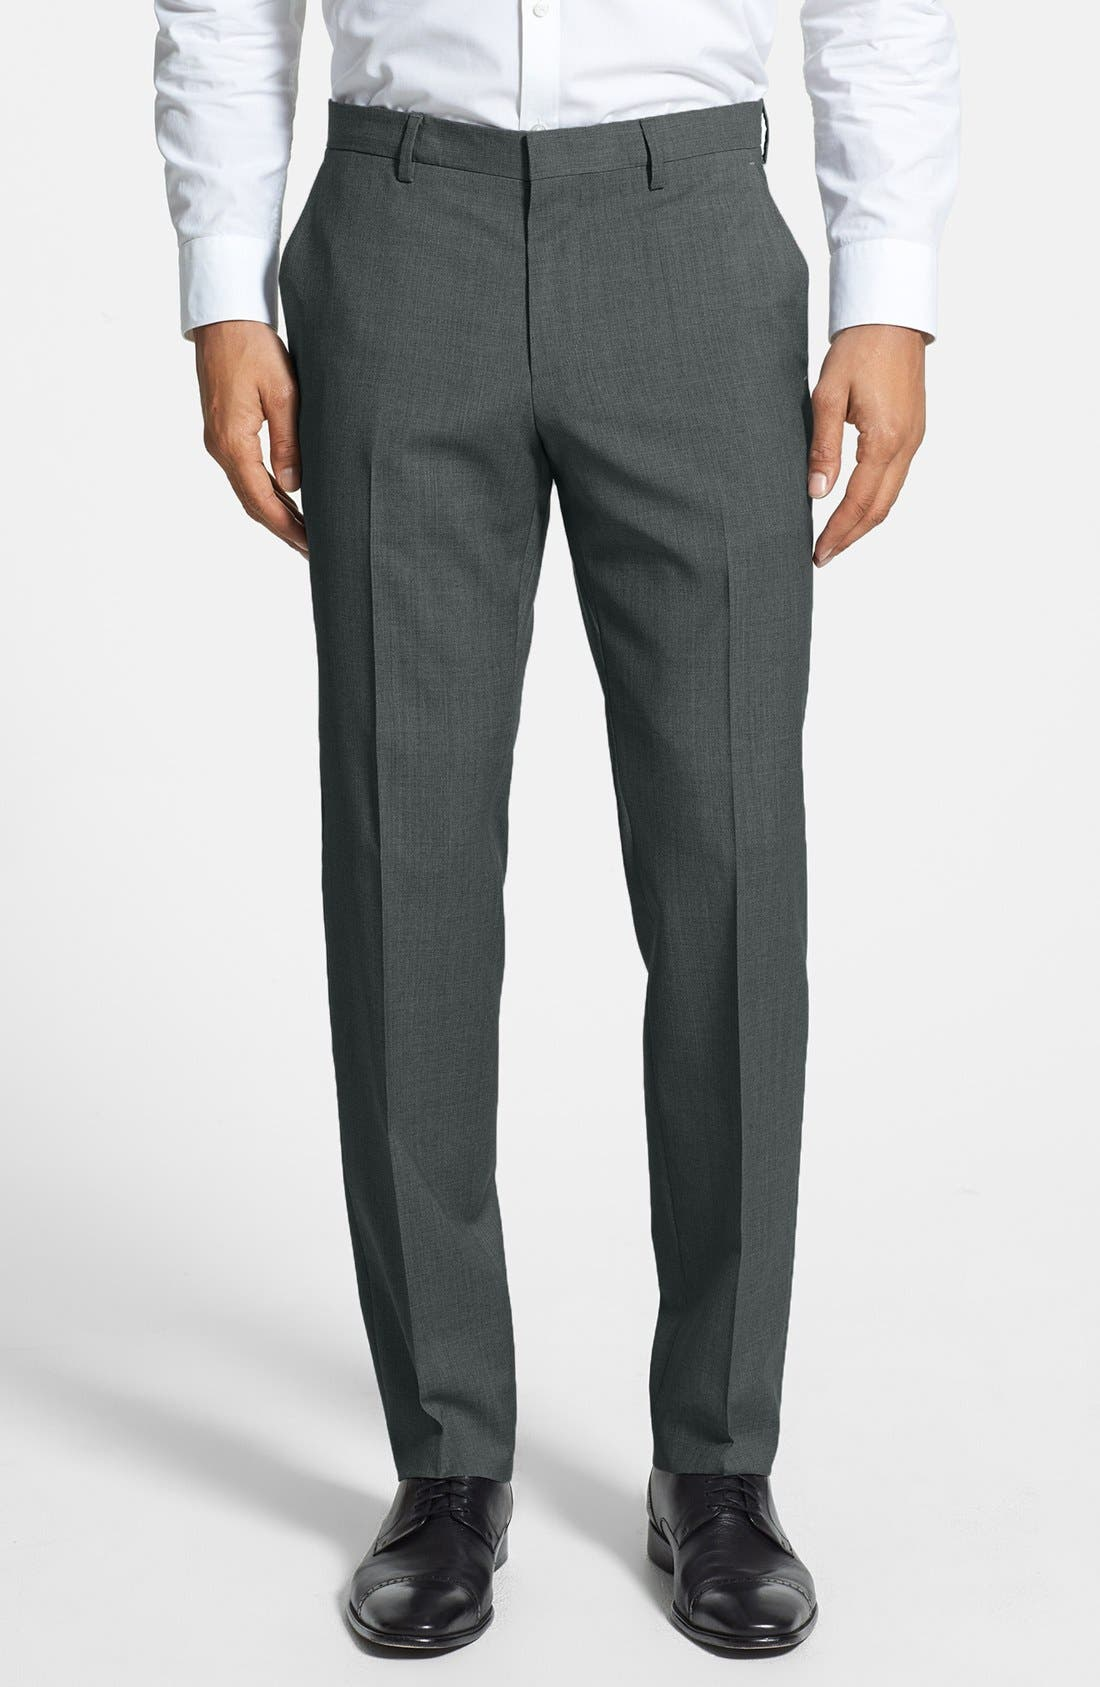 BOSS Genesis Flat Front Trim Fit Wool Trousers